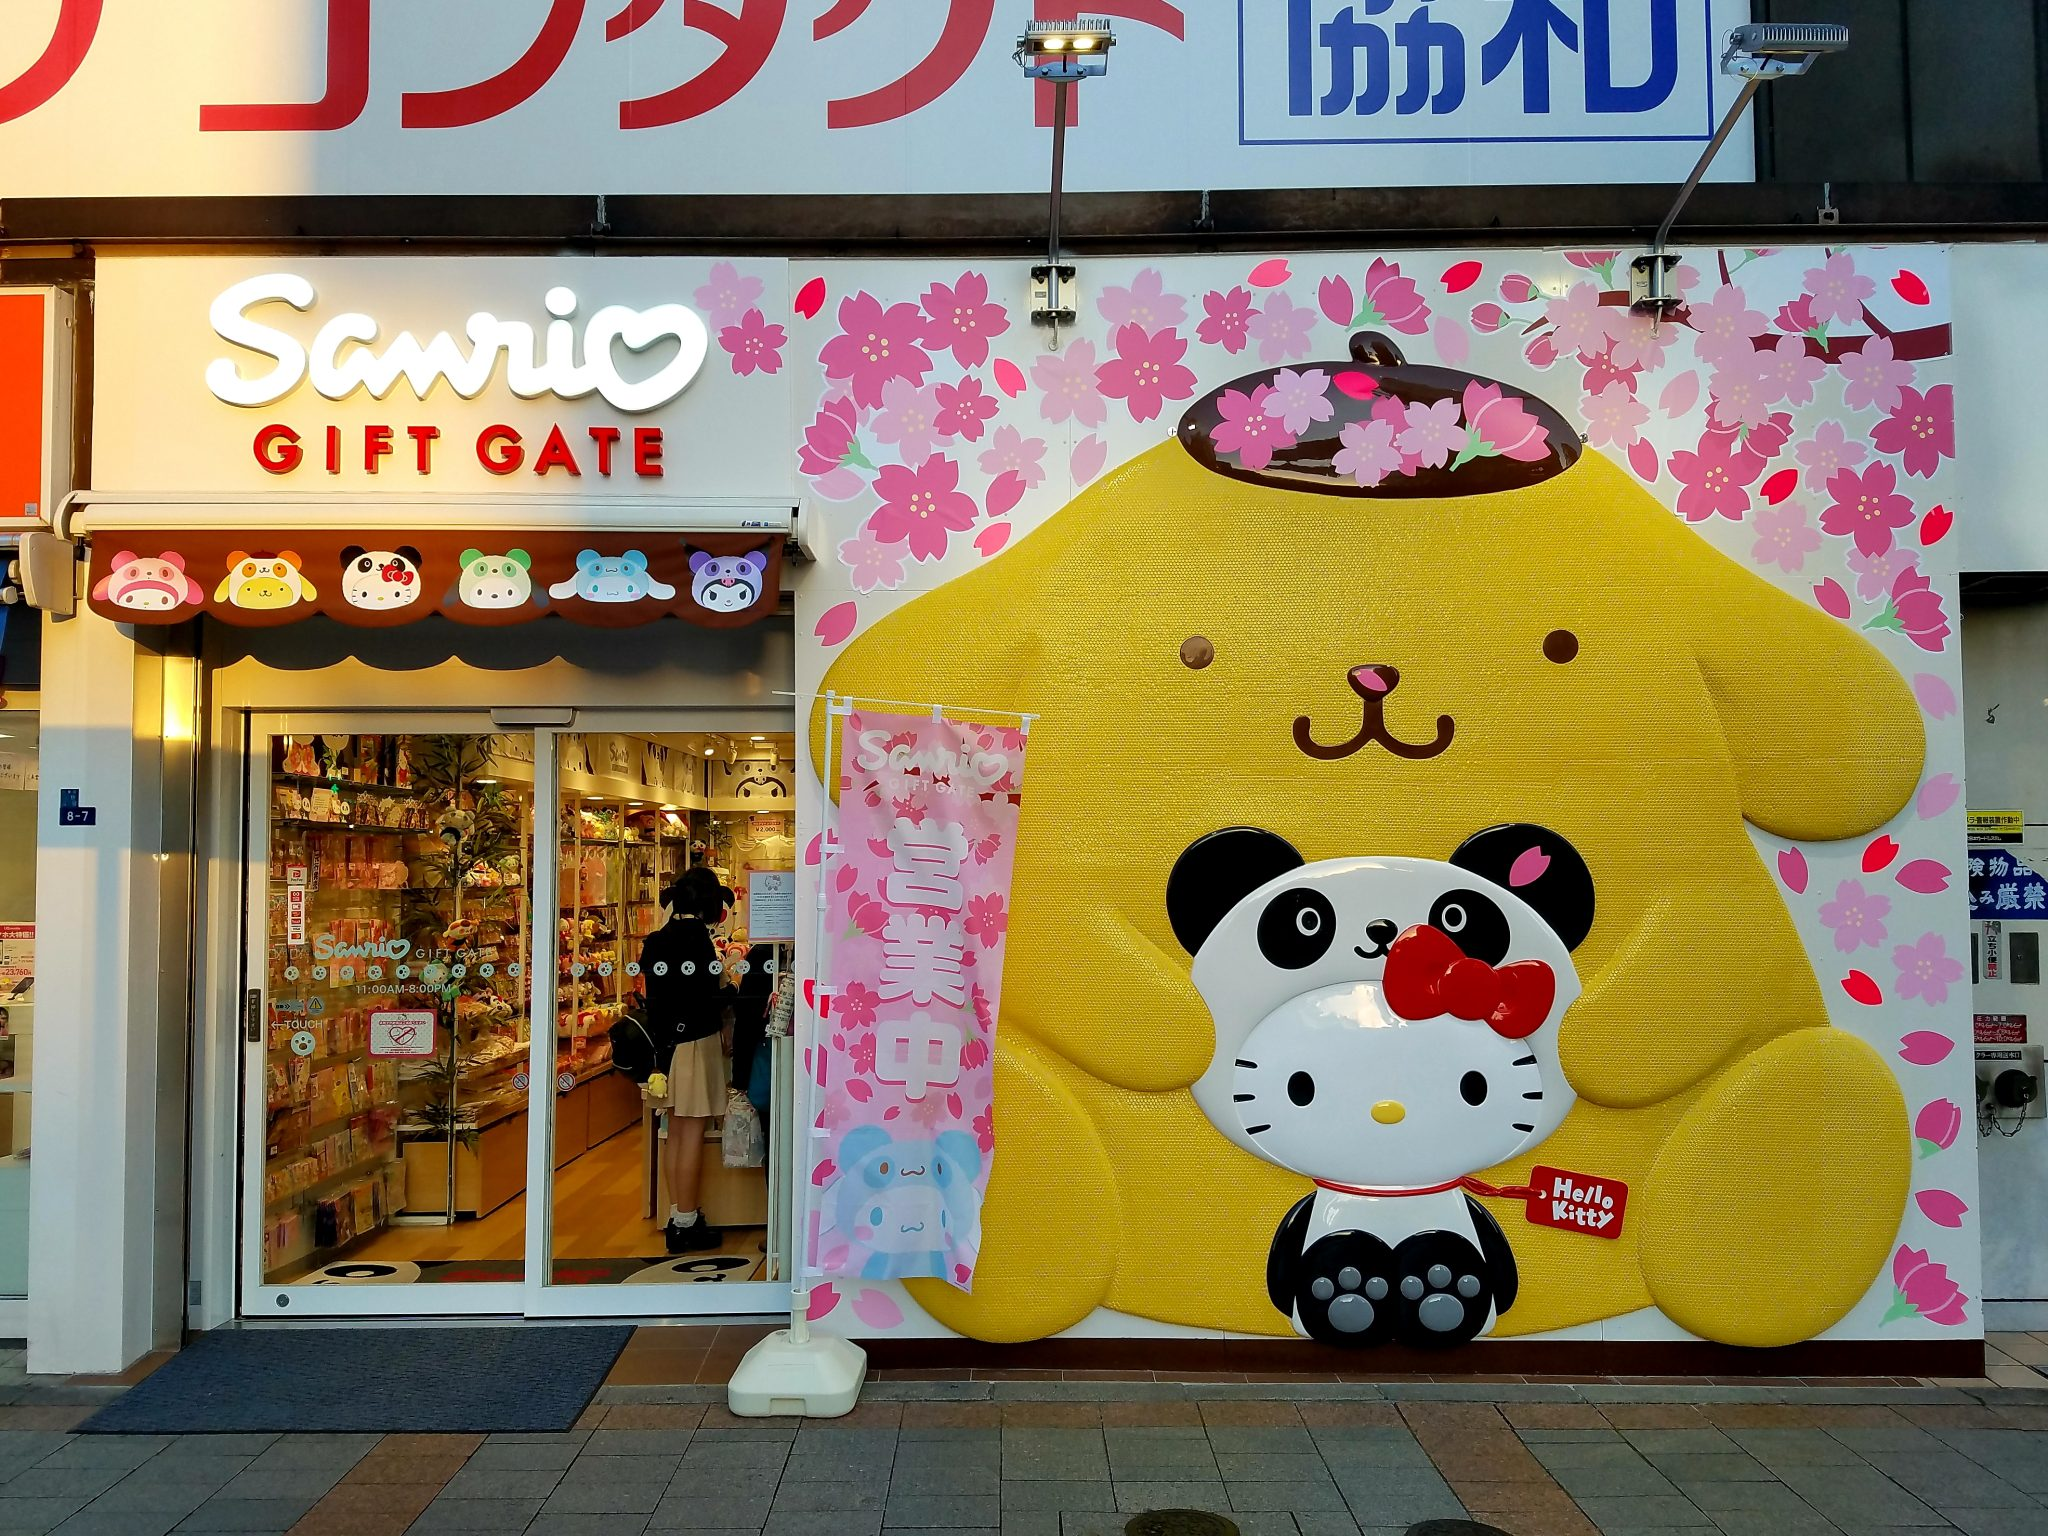 Panda Hello Kitty in the arms of Pompompurin: Sanrio opened their 107th Sanrio Gift Gate in Ueno on 24 January 2020